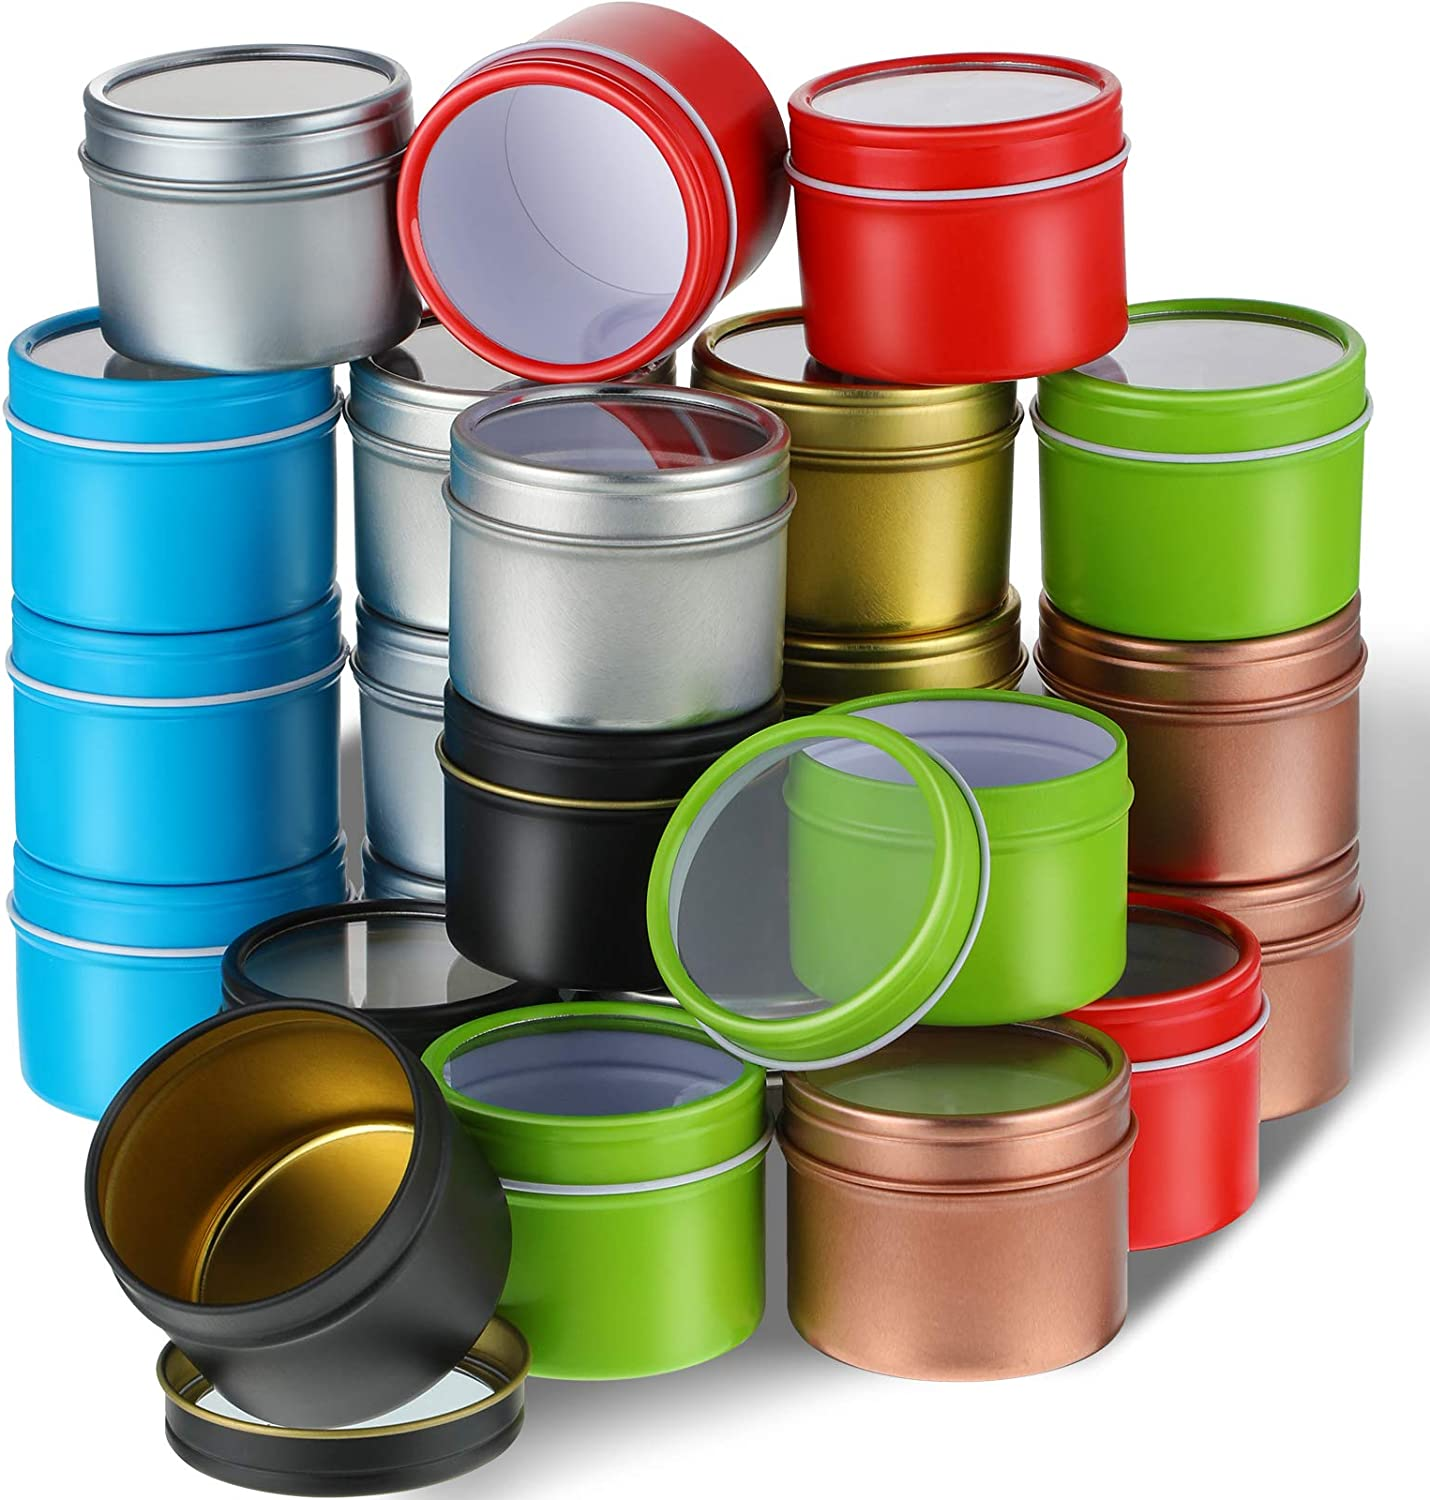 24 Pieces Candle Tins 2 oz Shallow Round Tins with Clear Window Lids Empty Candle Containers Cosmetics Tins Party Favors Tins and Food Storage Containers Metal Storage Case for DIY Candle Making